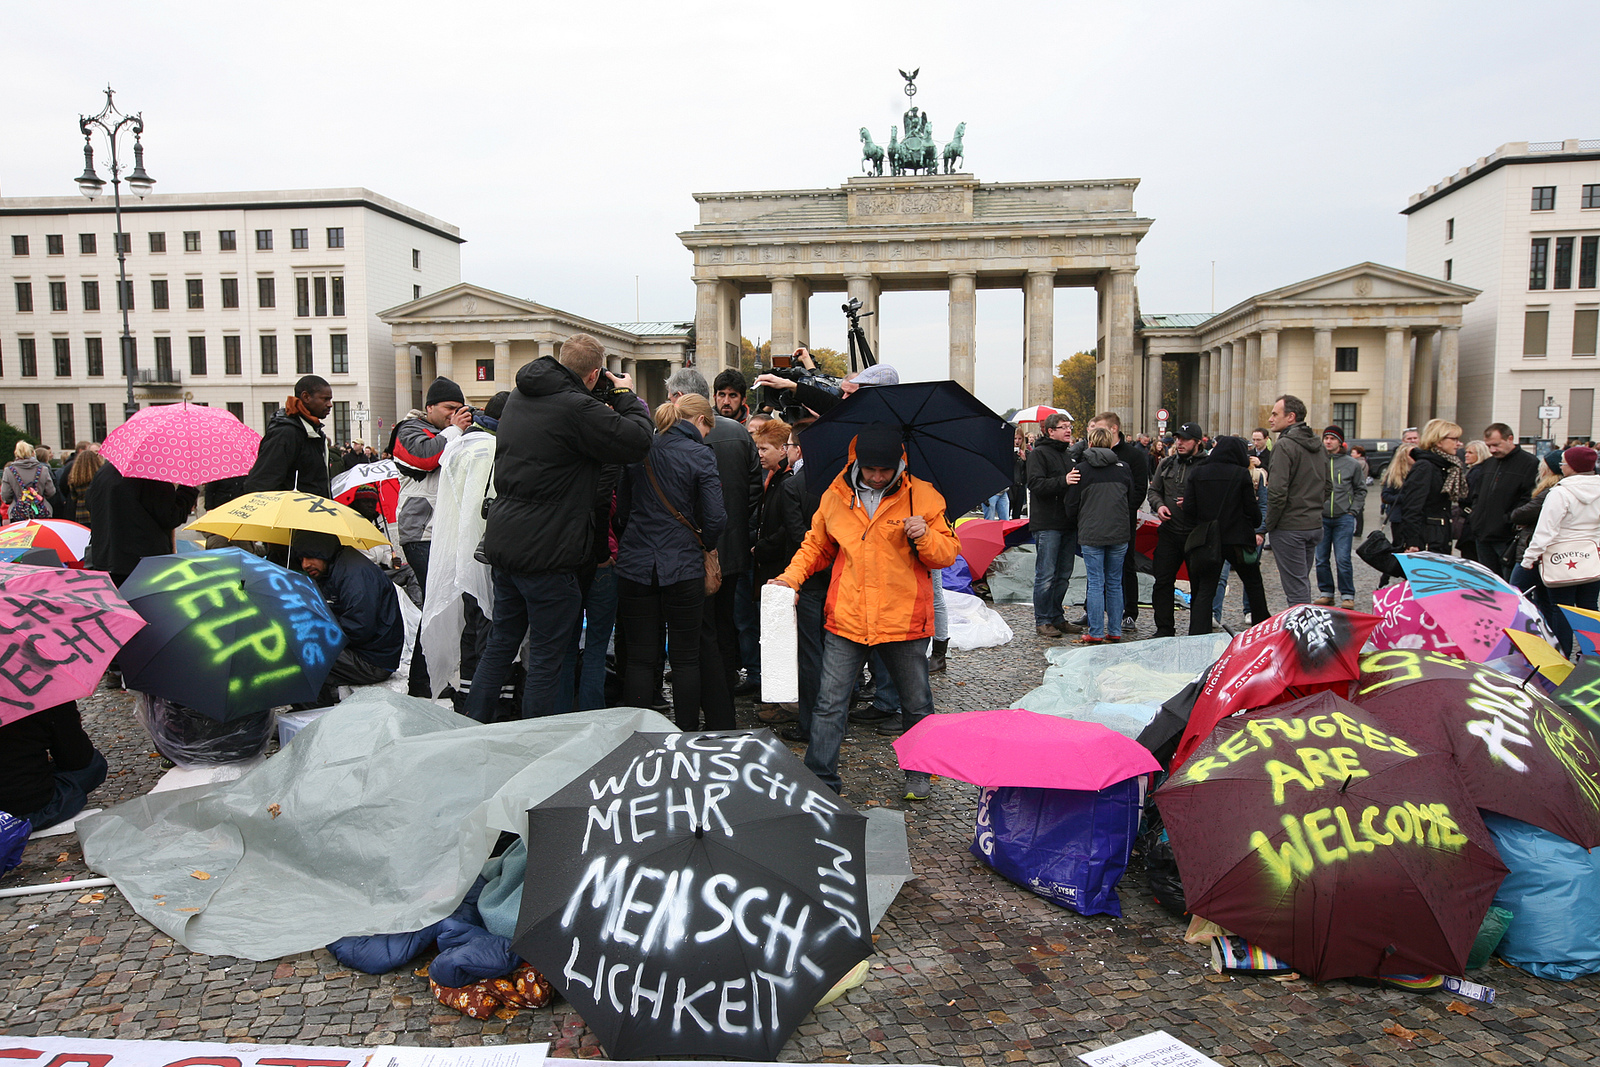 Protesters occupy Berlin's Pariser Platz in front of the Brandenburg Gate, calling for Germany to accept more refugees. Berlin 2013 [Fraktion DIE LINKE im Bundestag/Flickr]